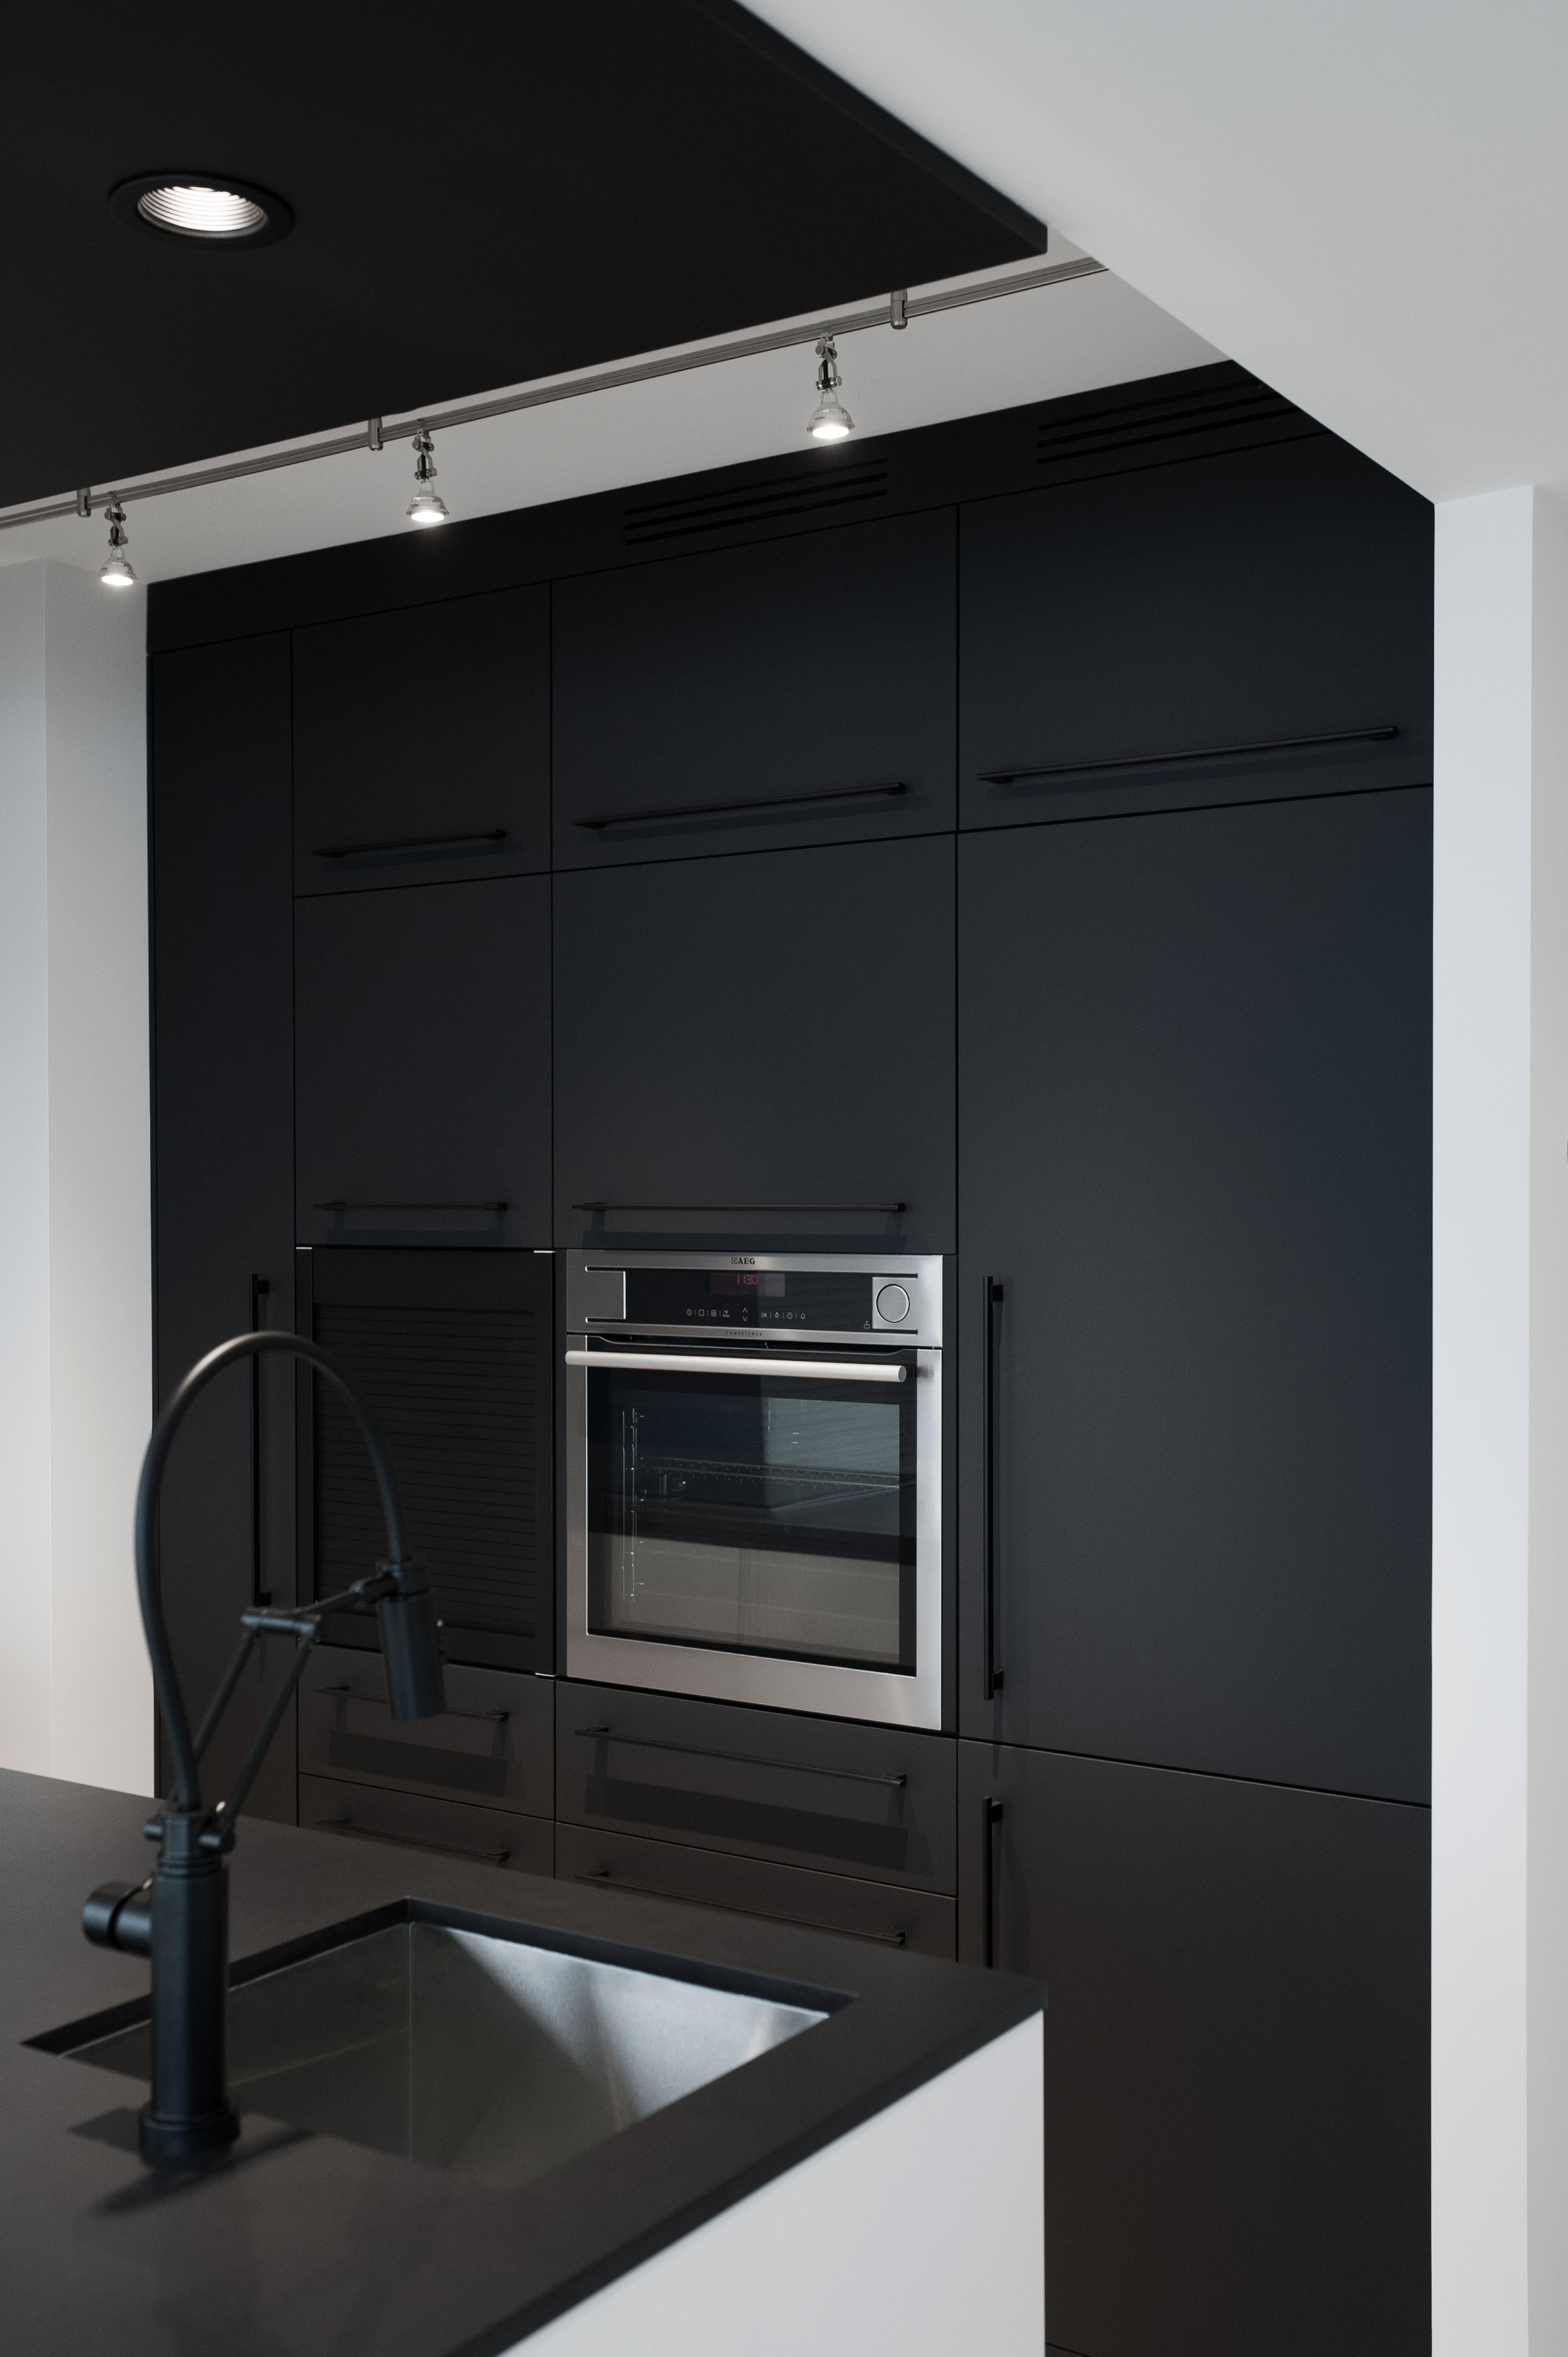 KITCHEN CUSTOM FURNITURE BUILT-IN CABINETRY VANCOUVER ANTHILL STUDIO DESIGN LOCAL